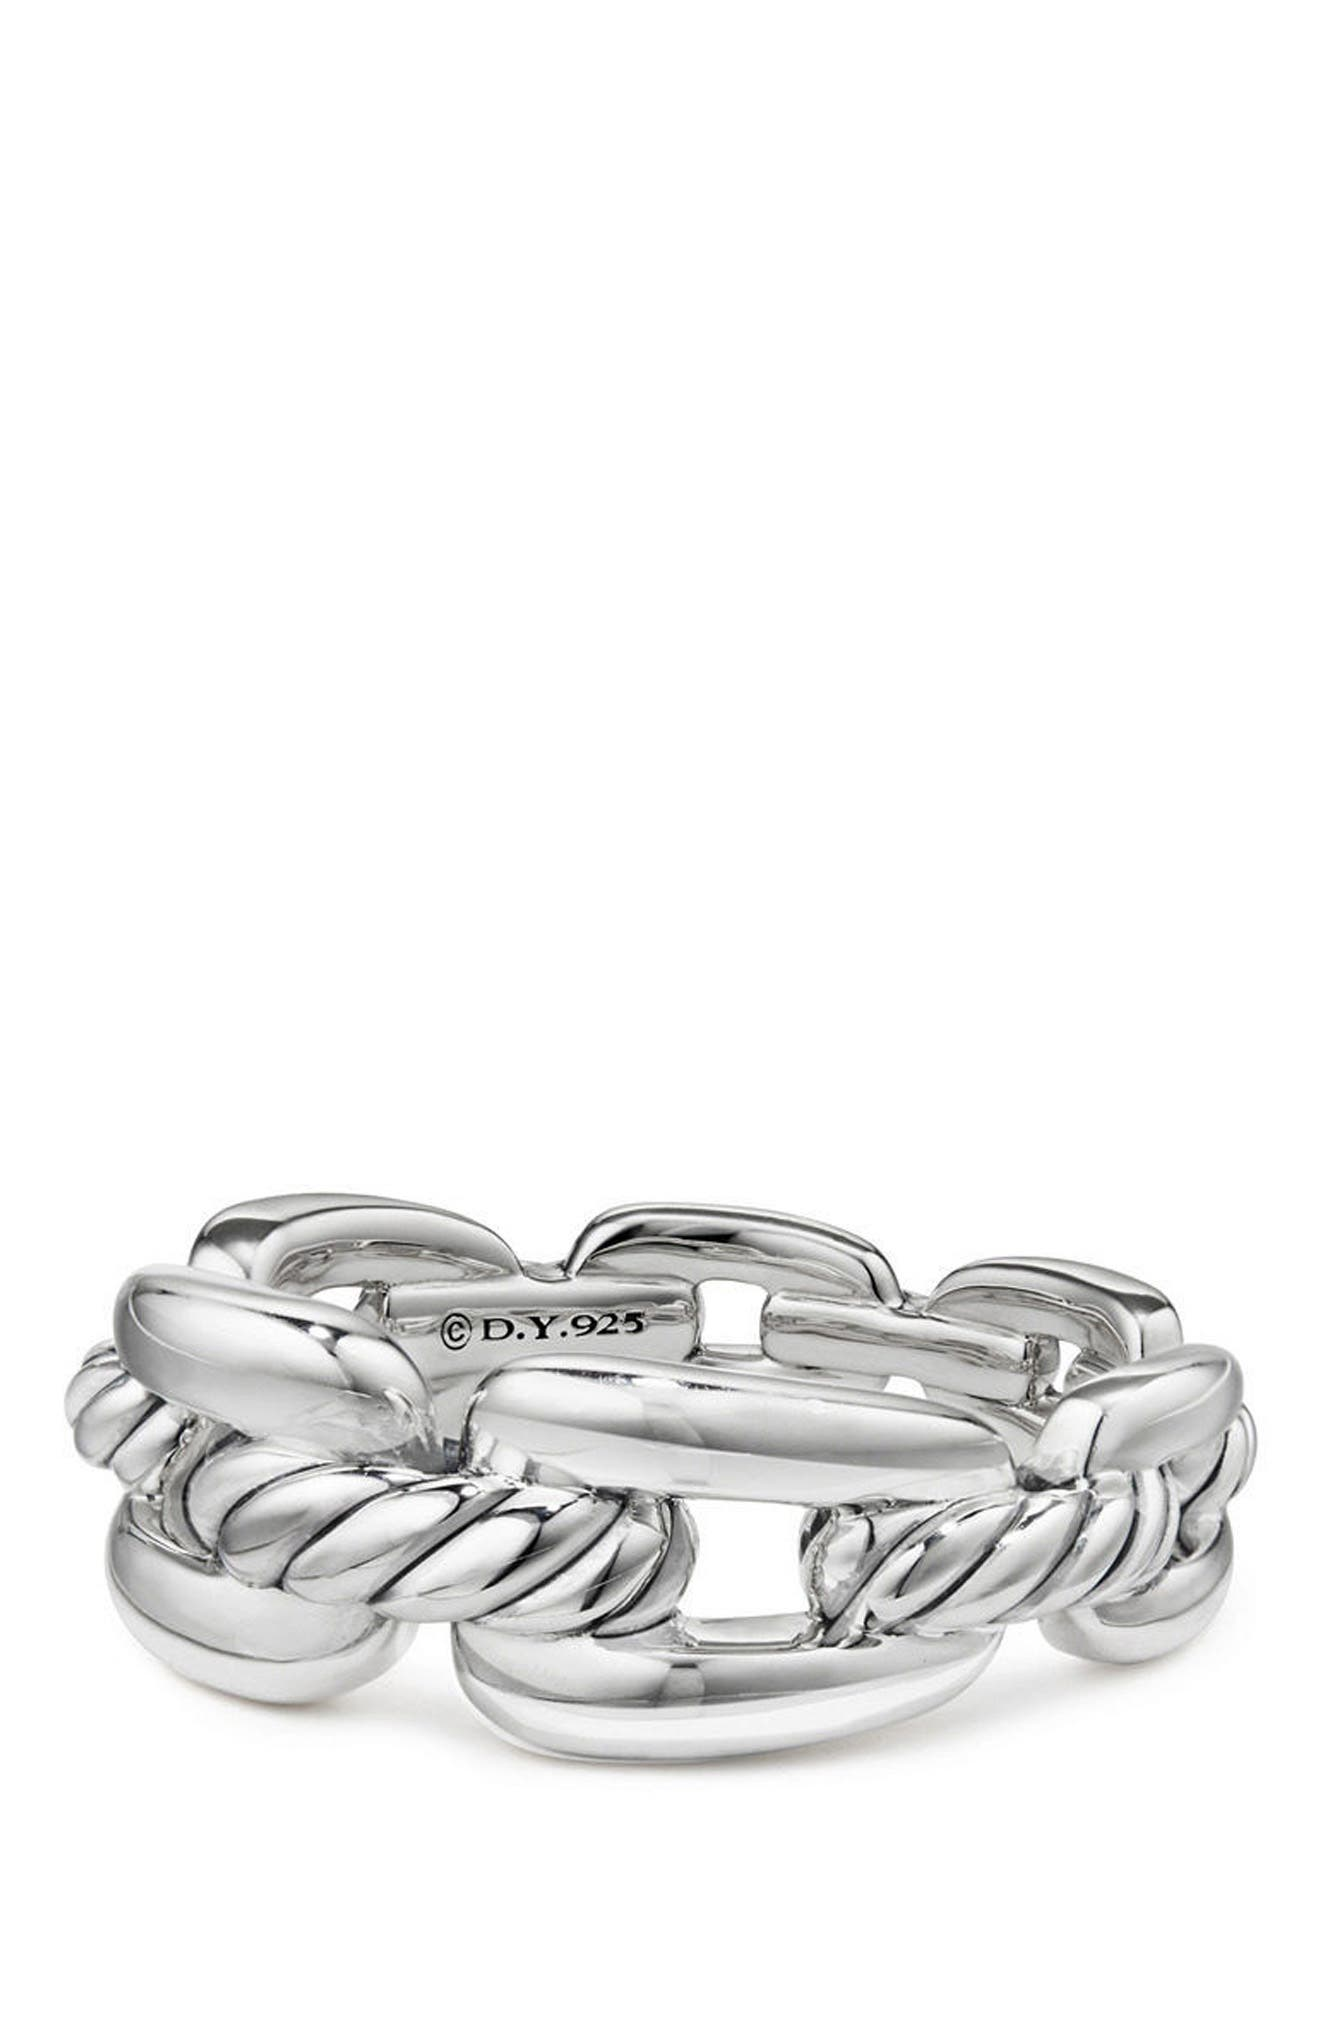 Wellesley Chain Link Ring with Diamonds,                         Main,                         color, Silver